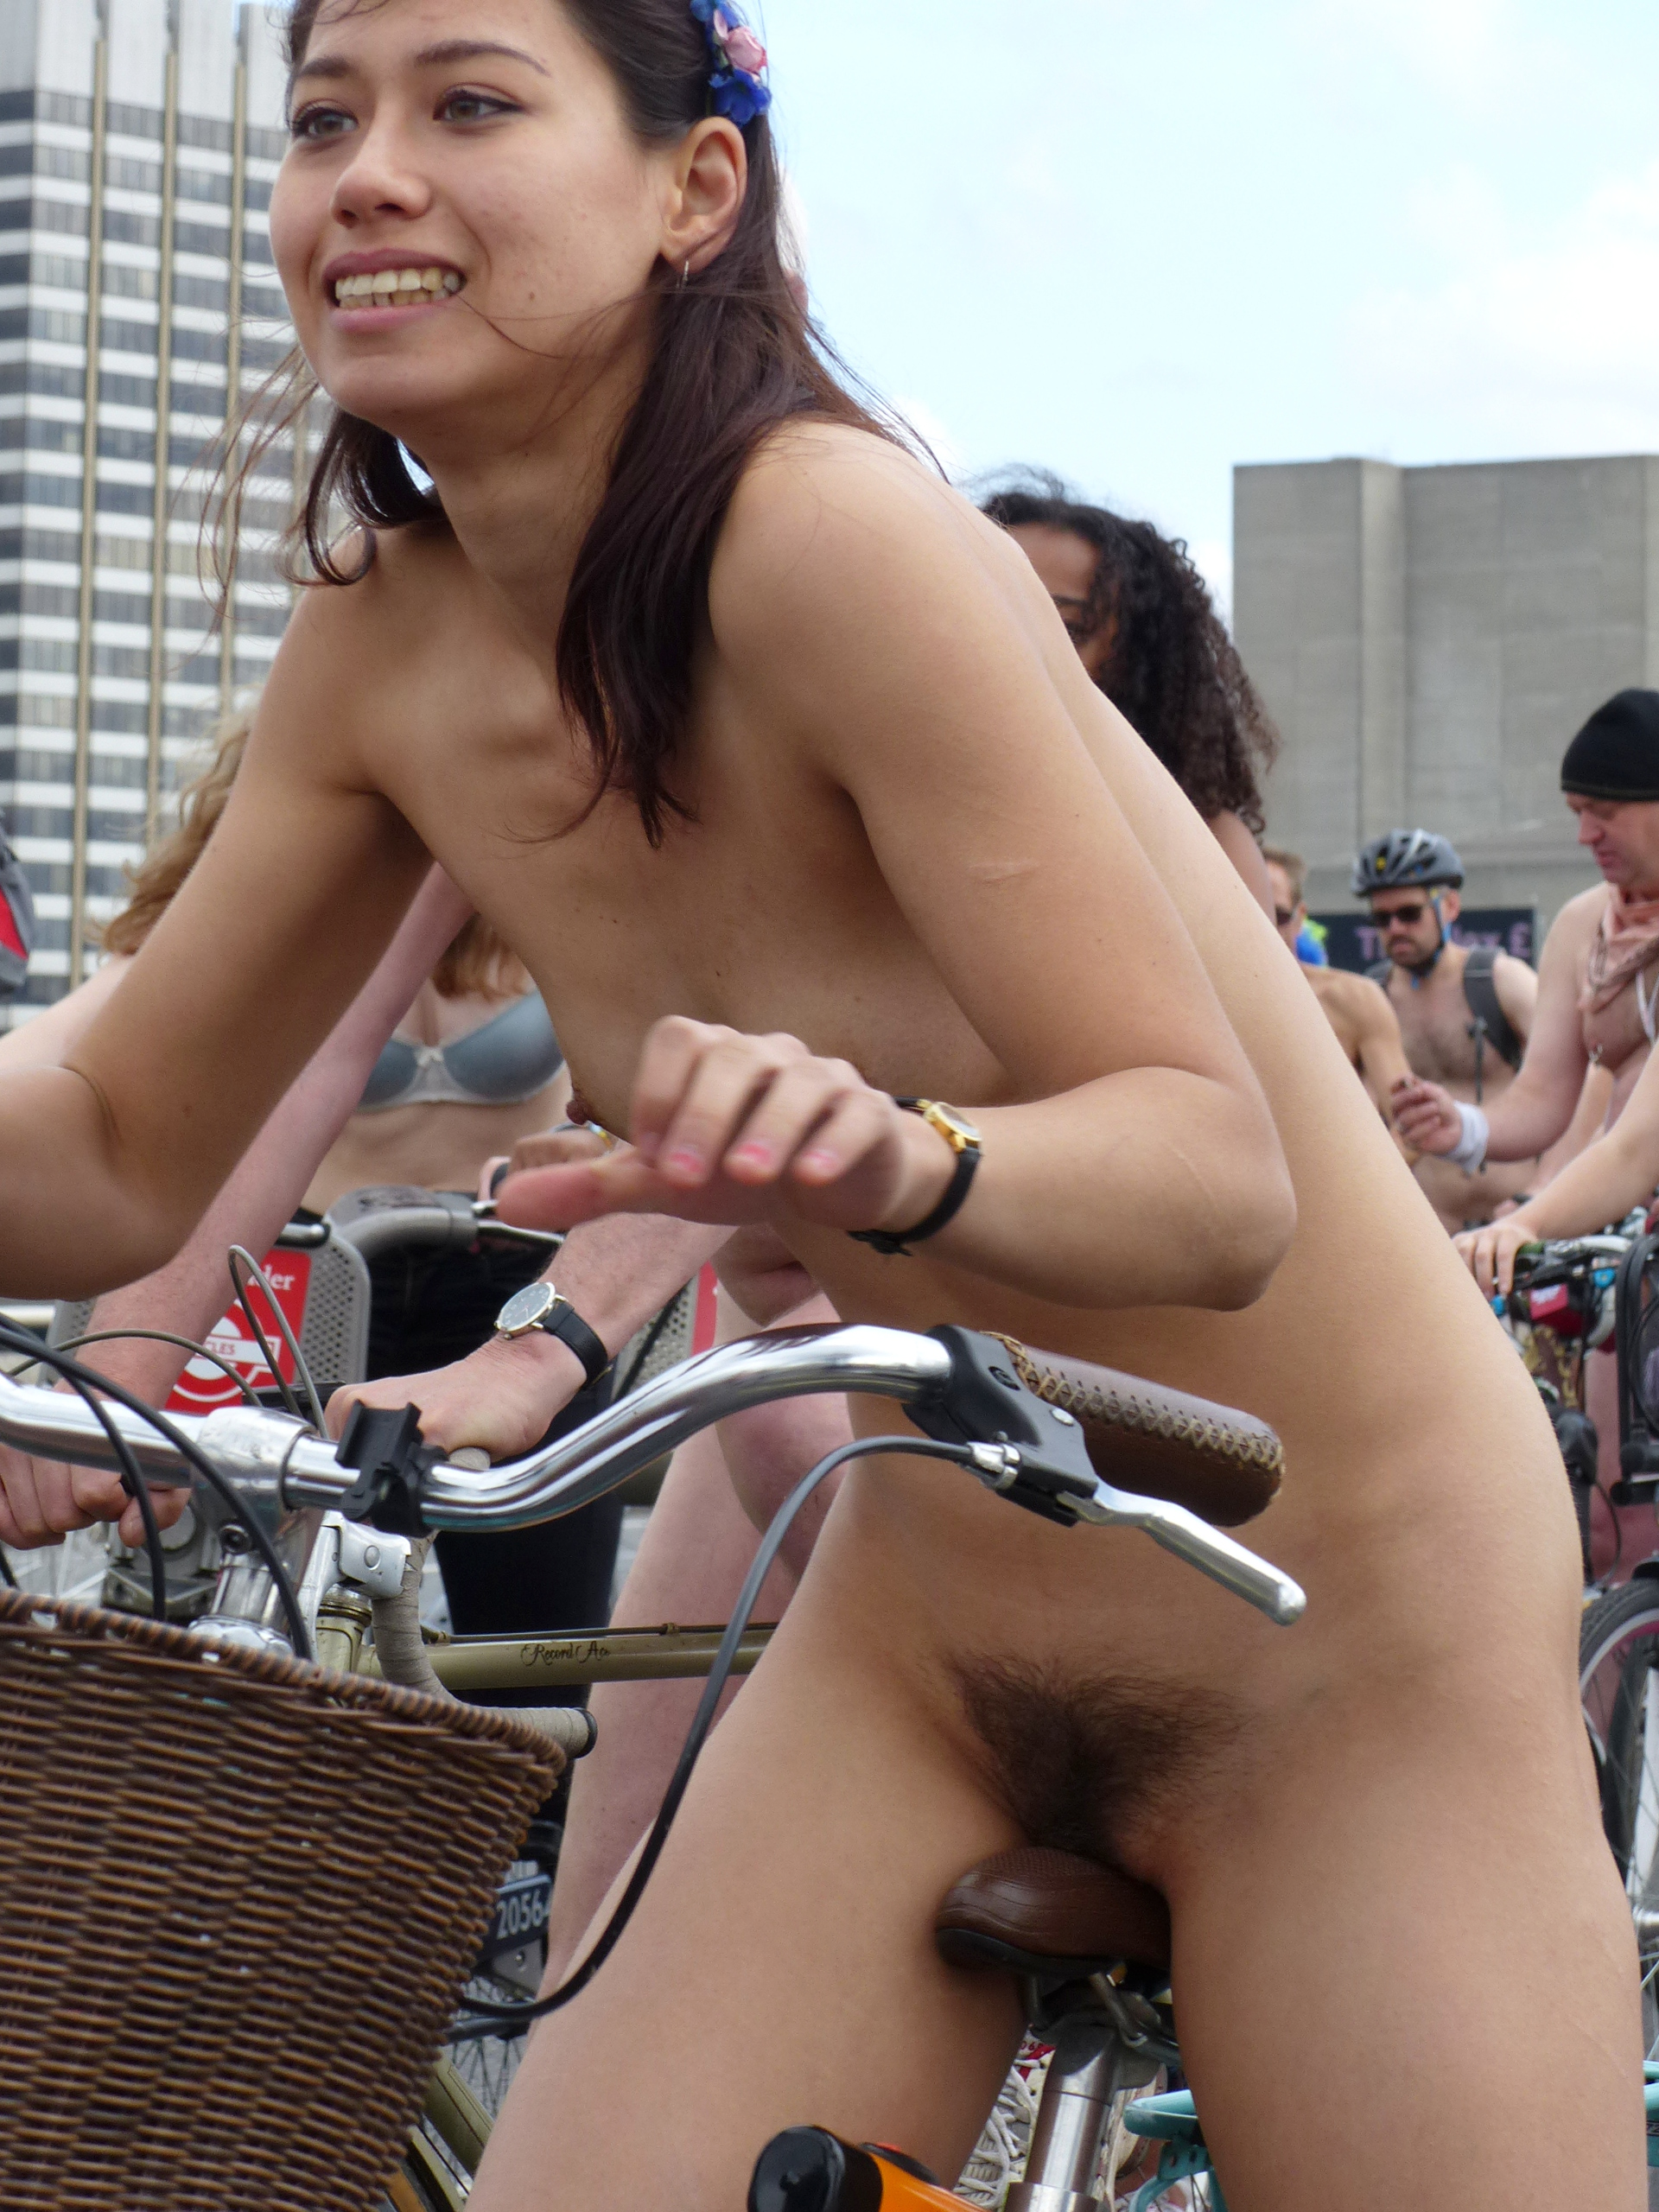 Sex Naked Bycycle Race Scenes